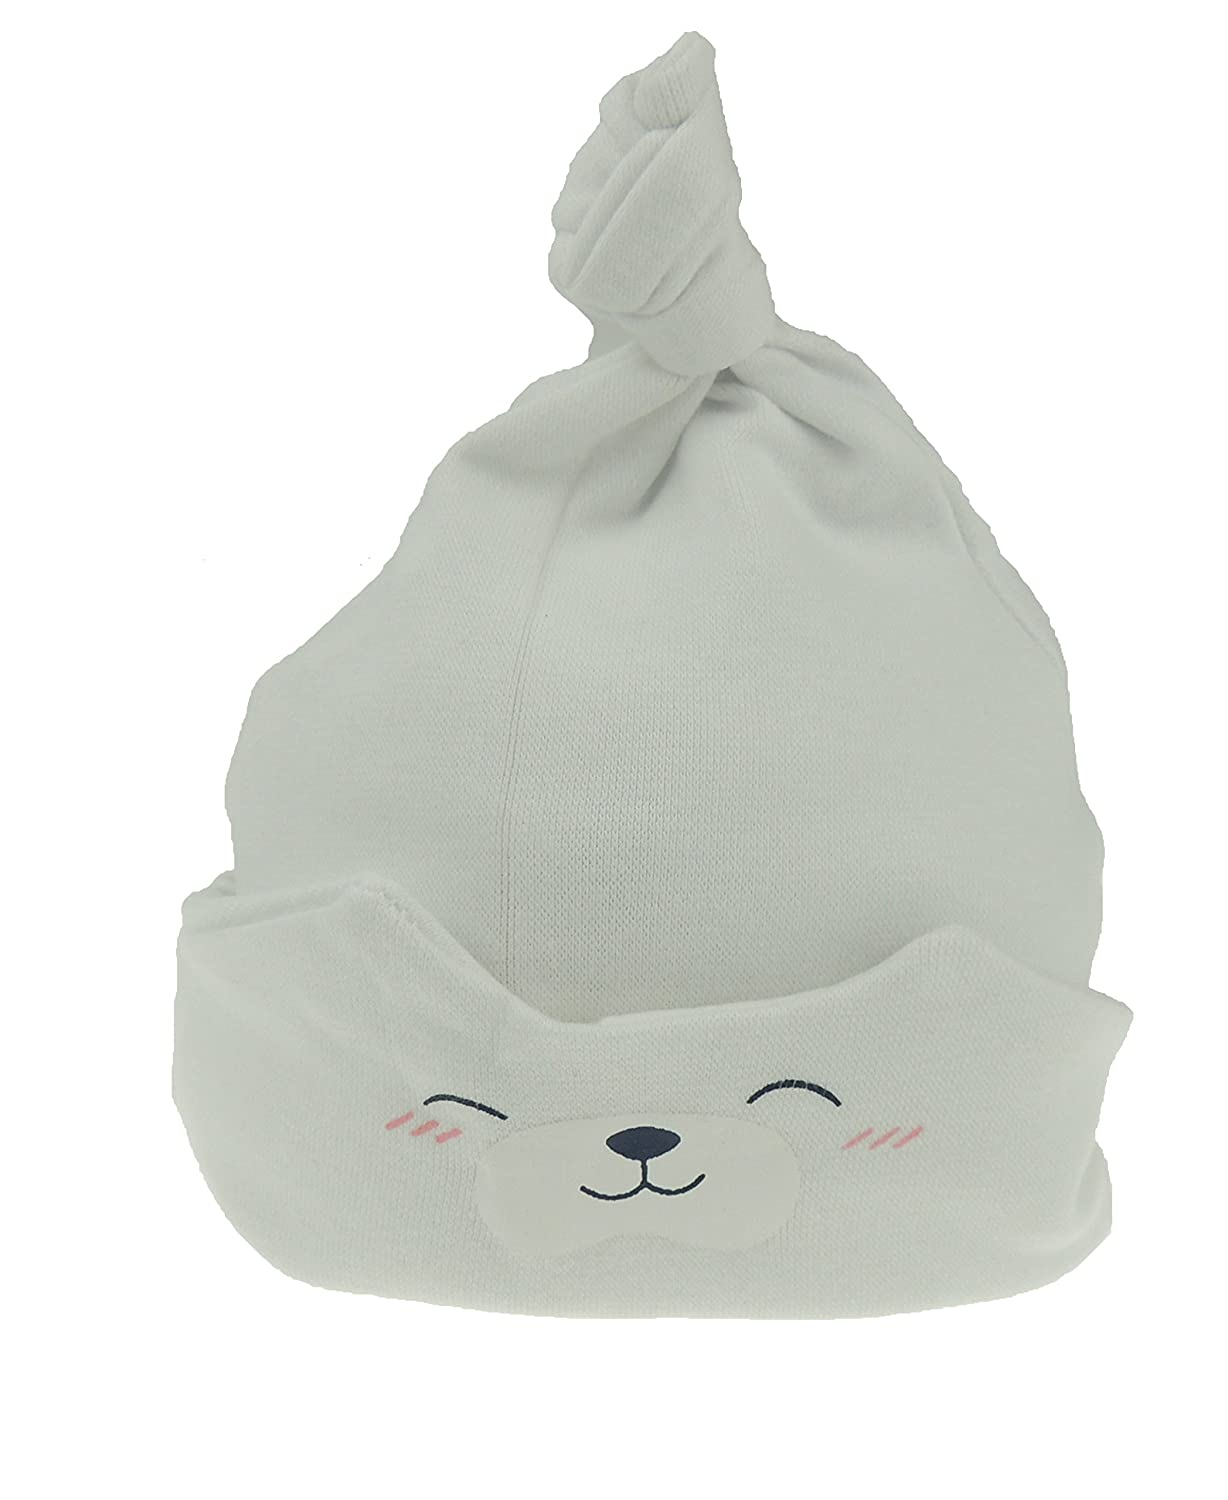 White Baby Girls Boys Teddy Bear Sleep Beanie Hat Fold Up Fold Down from New-Born to 24 Months